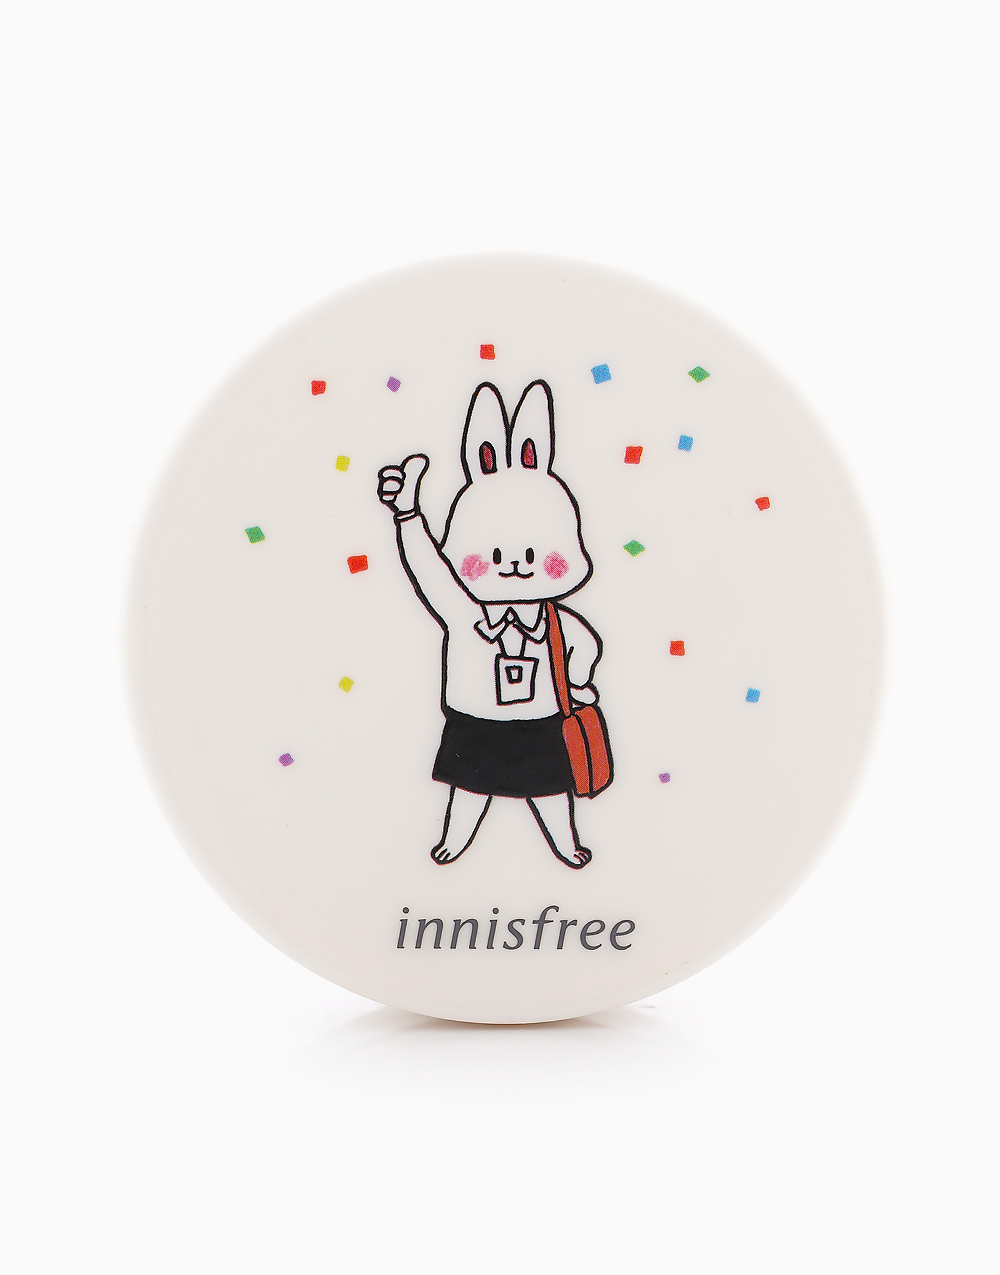 No Sebum Mineral Powder Happy Bunny Edition (5g) by Innisfree | #4 Do What You Love